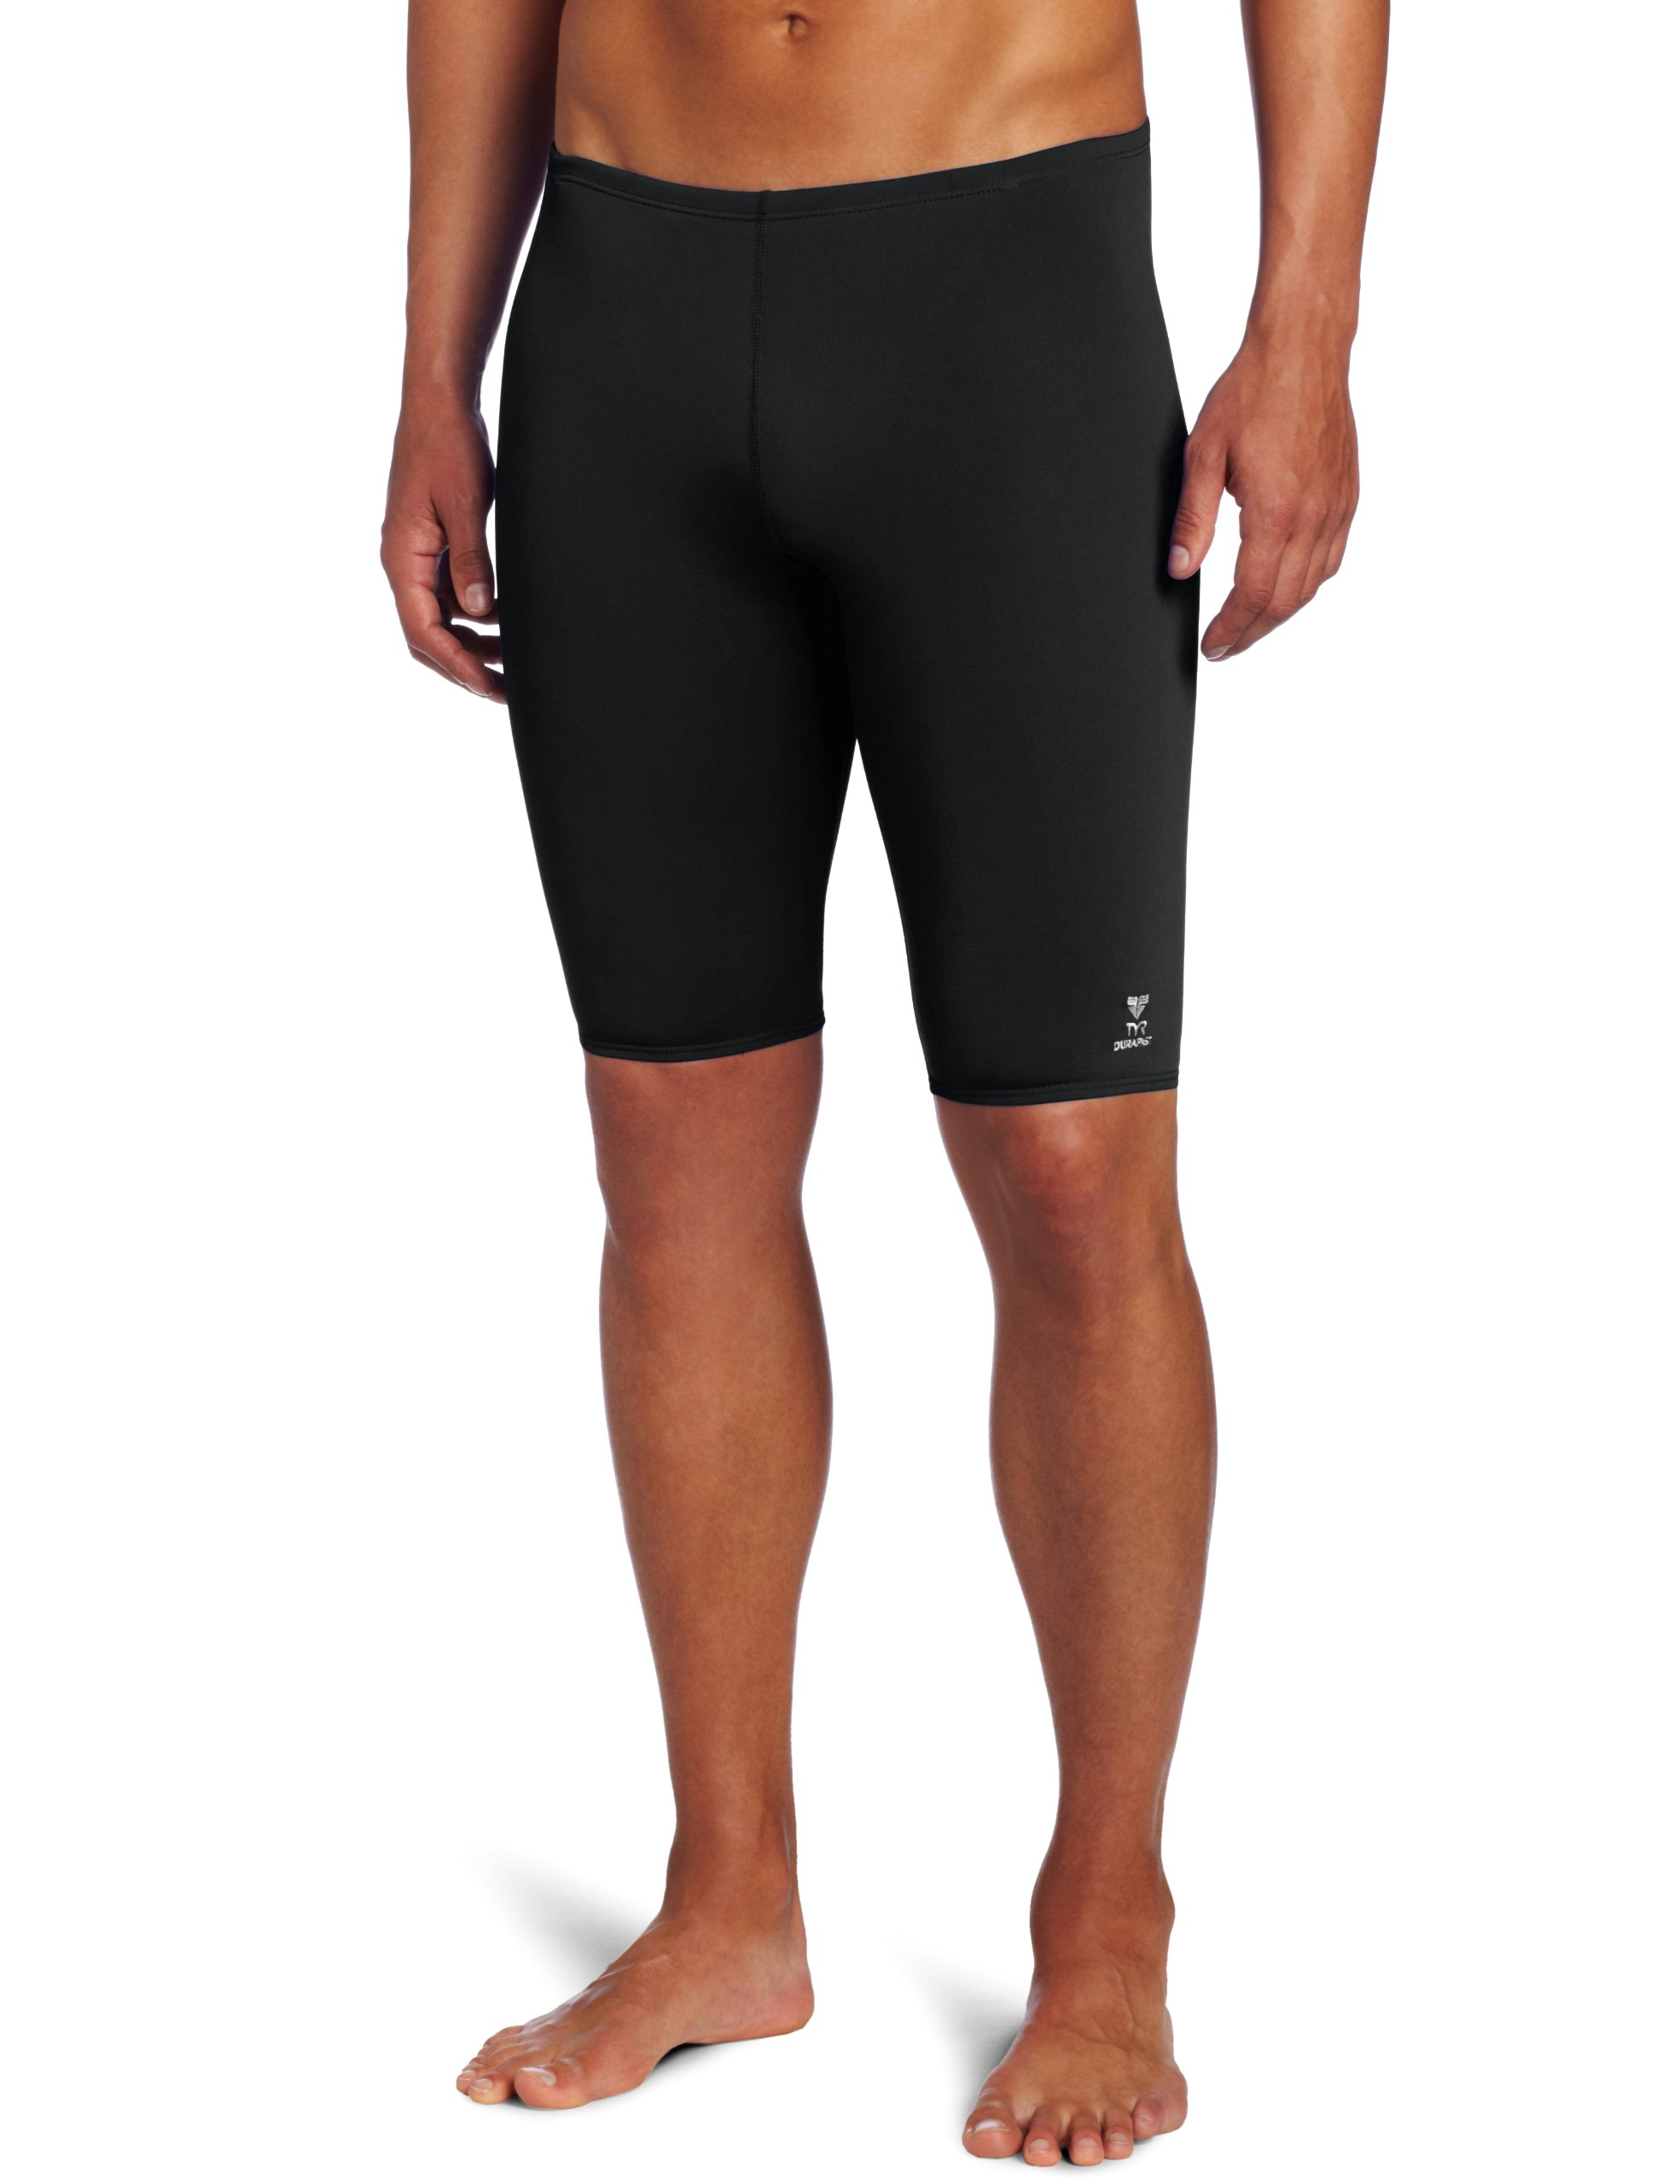 TYR Men's Solid Durafast Jammer Swim Suit (Black, 34)